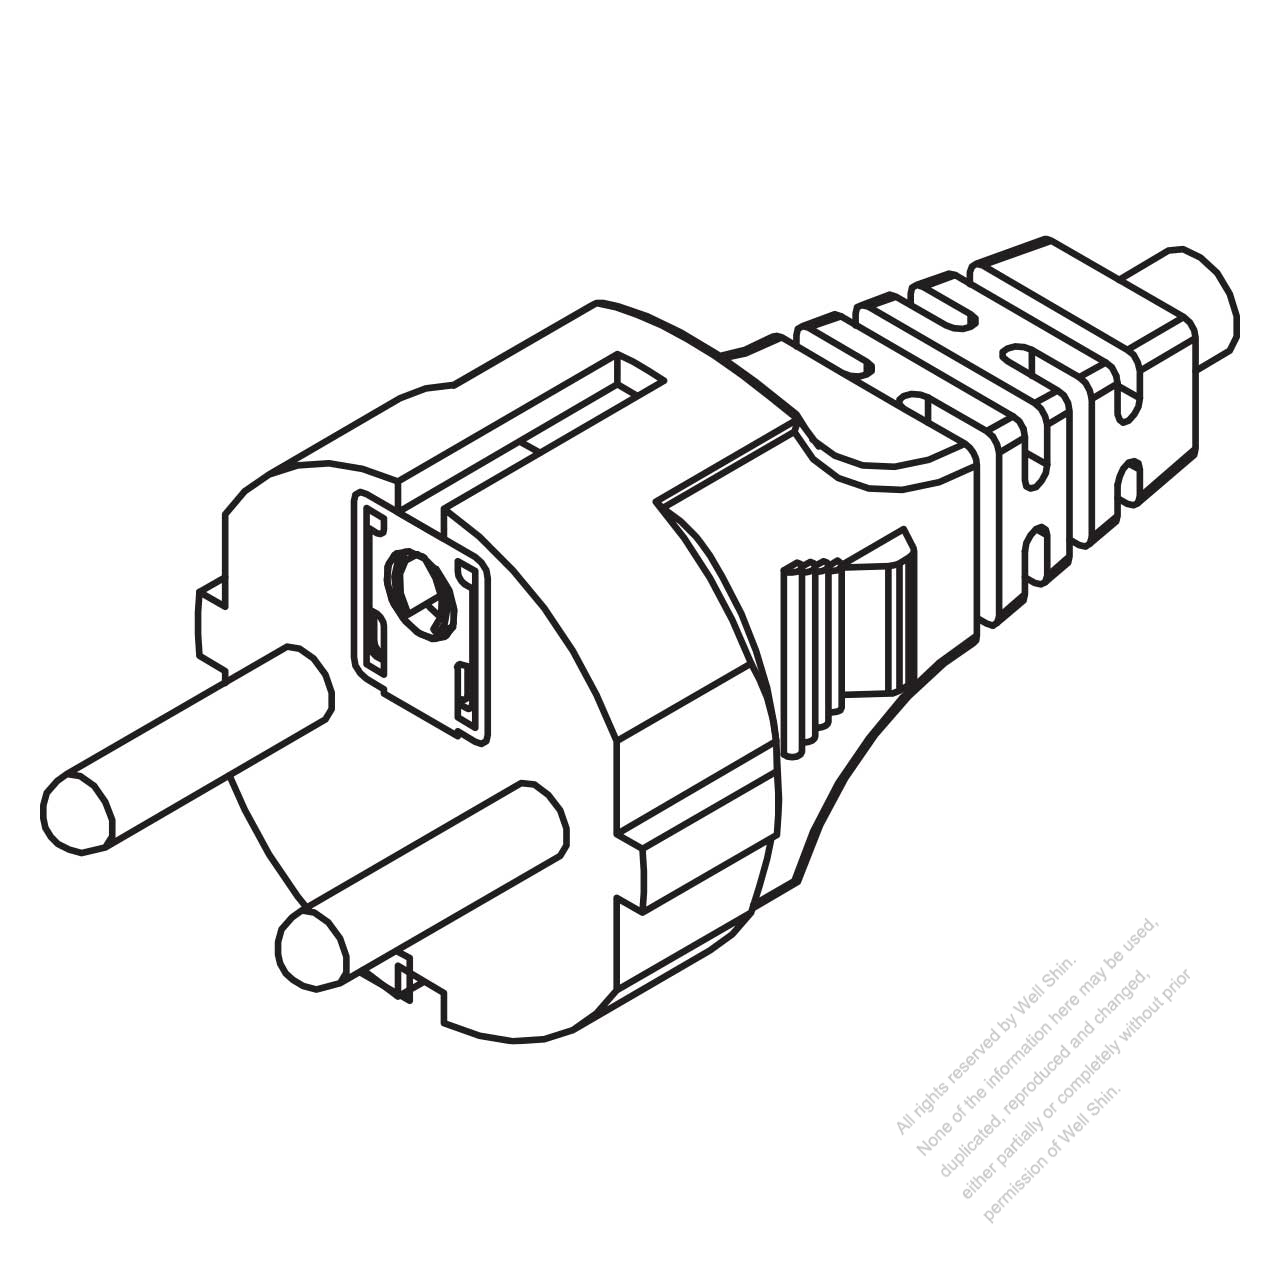 Switzerland 3 Pin Straight Ac Plug 10 16a 250v